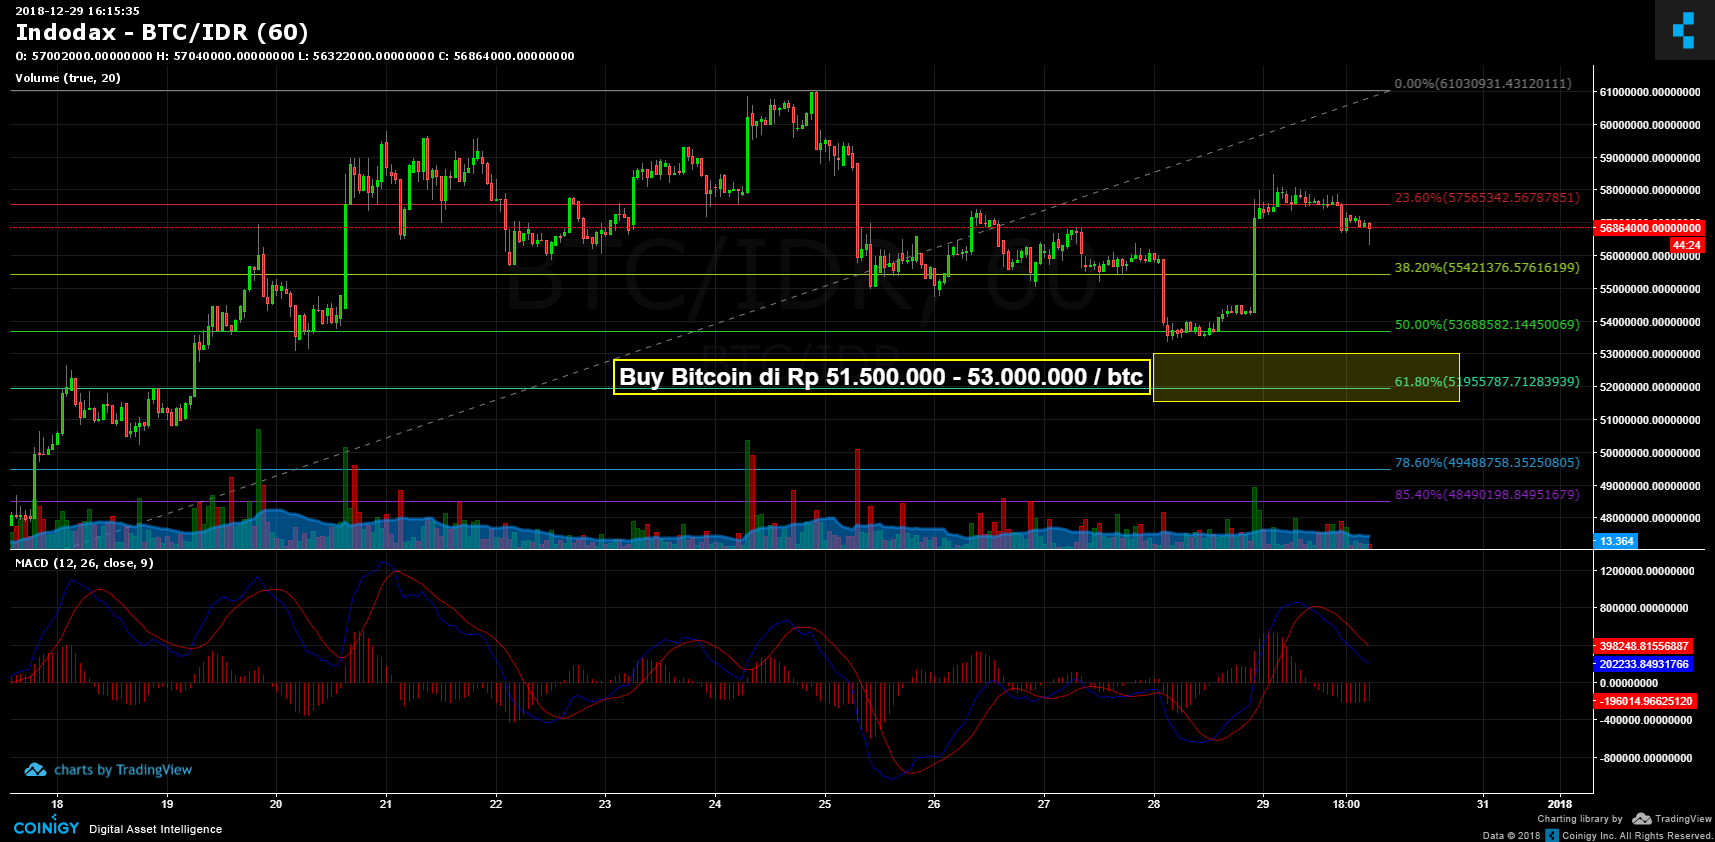 Indodax Btc Idr Chart Published On Coinigy Com On December 29th 2018 At 4 15 Pm